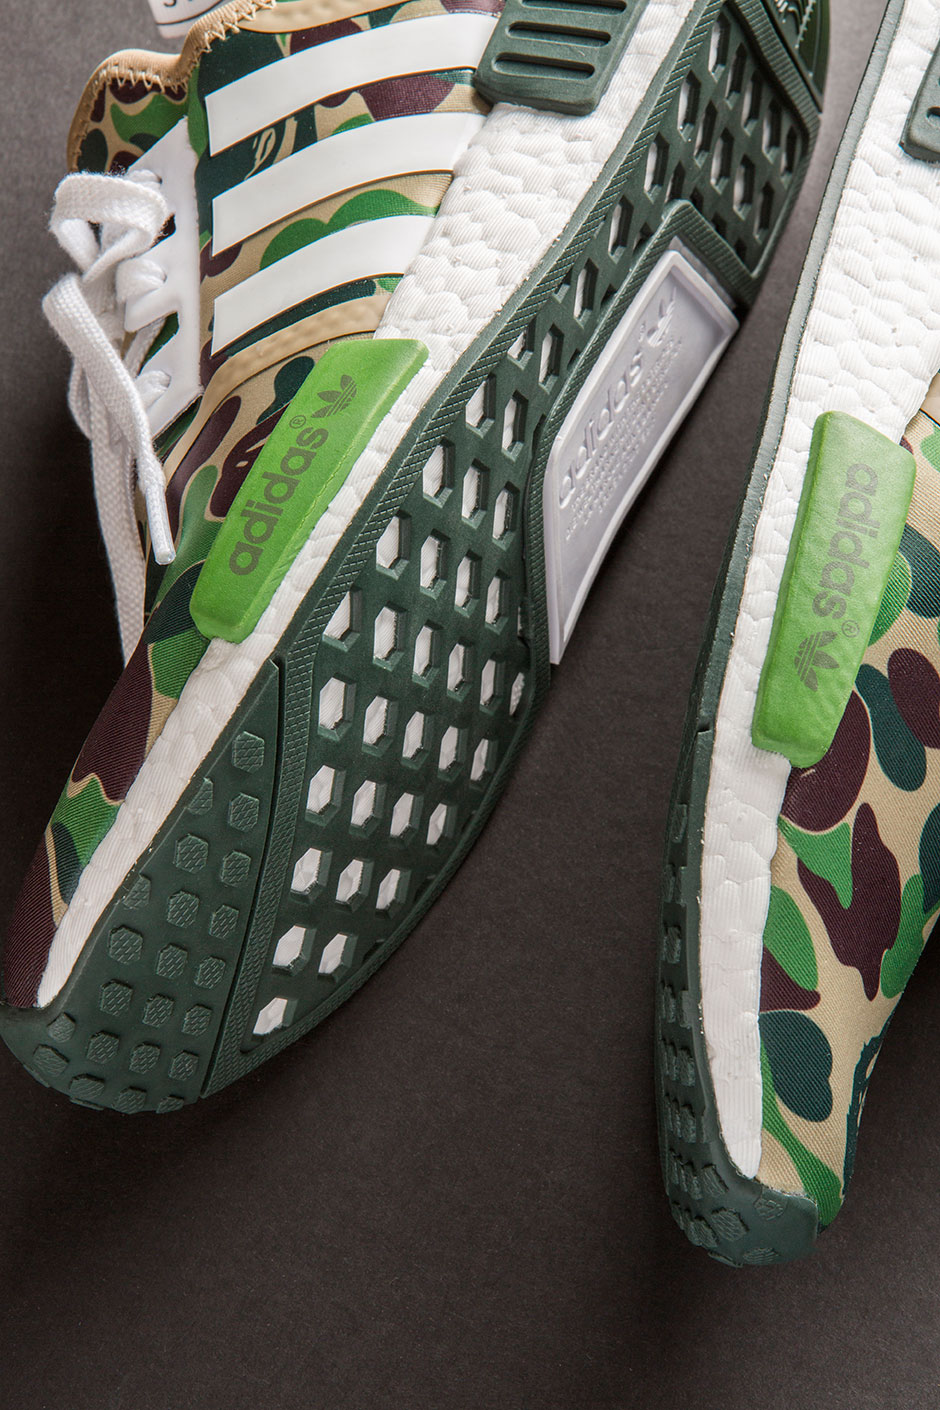 adidas-nmd-bape-a-bathing-ape-collaboration-release-20161126-12